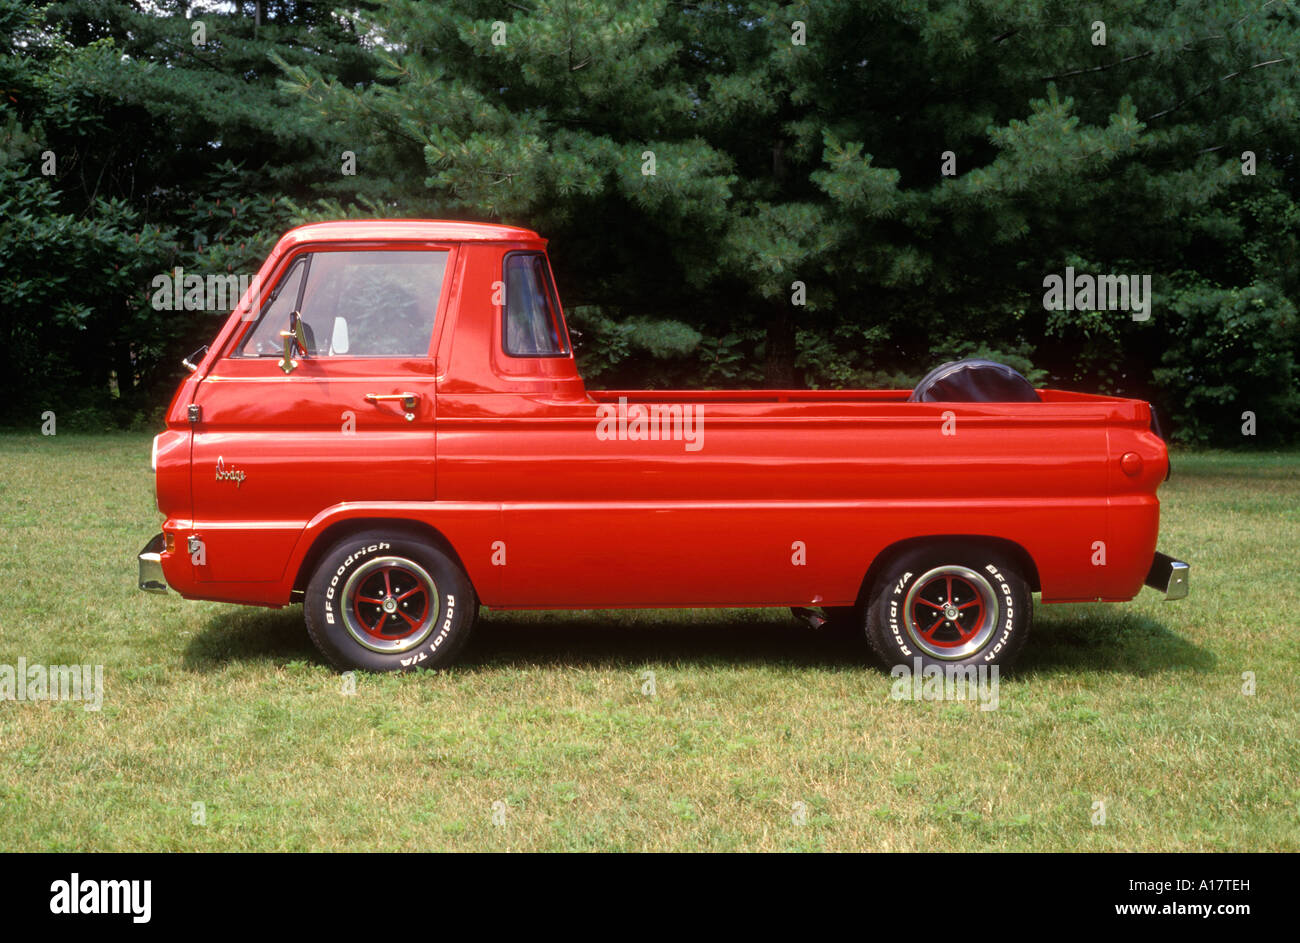 1966 dodge a 100 compact pickup truck on grass stock photo 10172008 1966 dodge a 100 compact pickup truck on grass publicscrutiny Choice Image